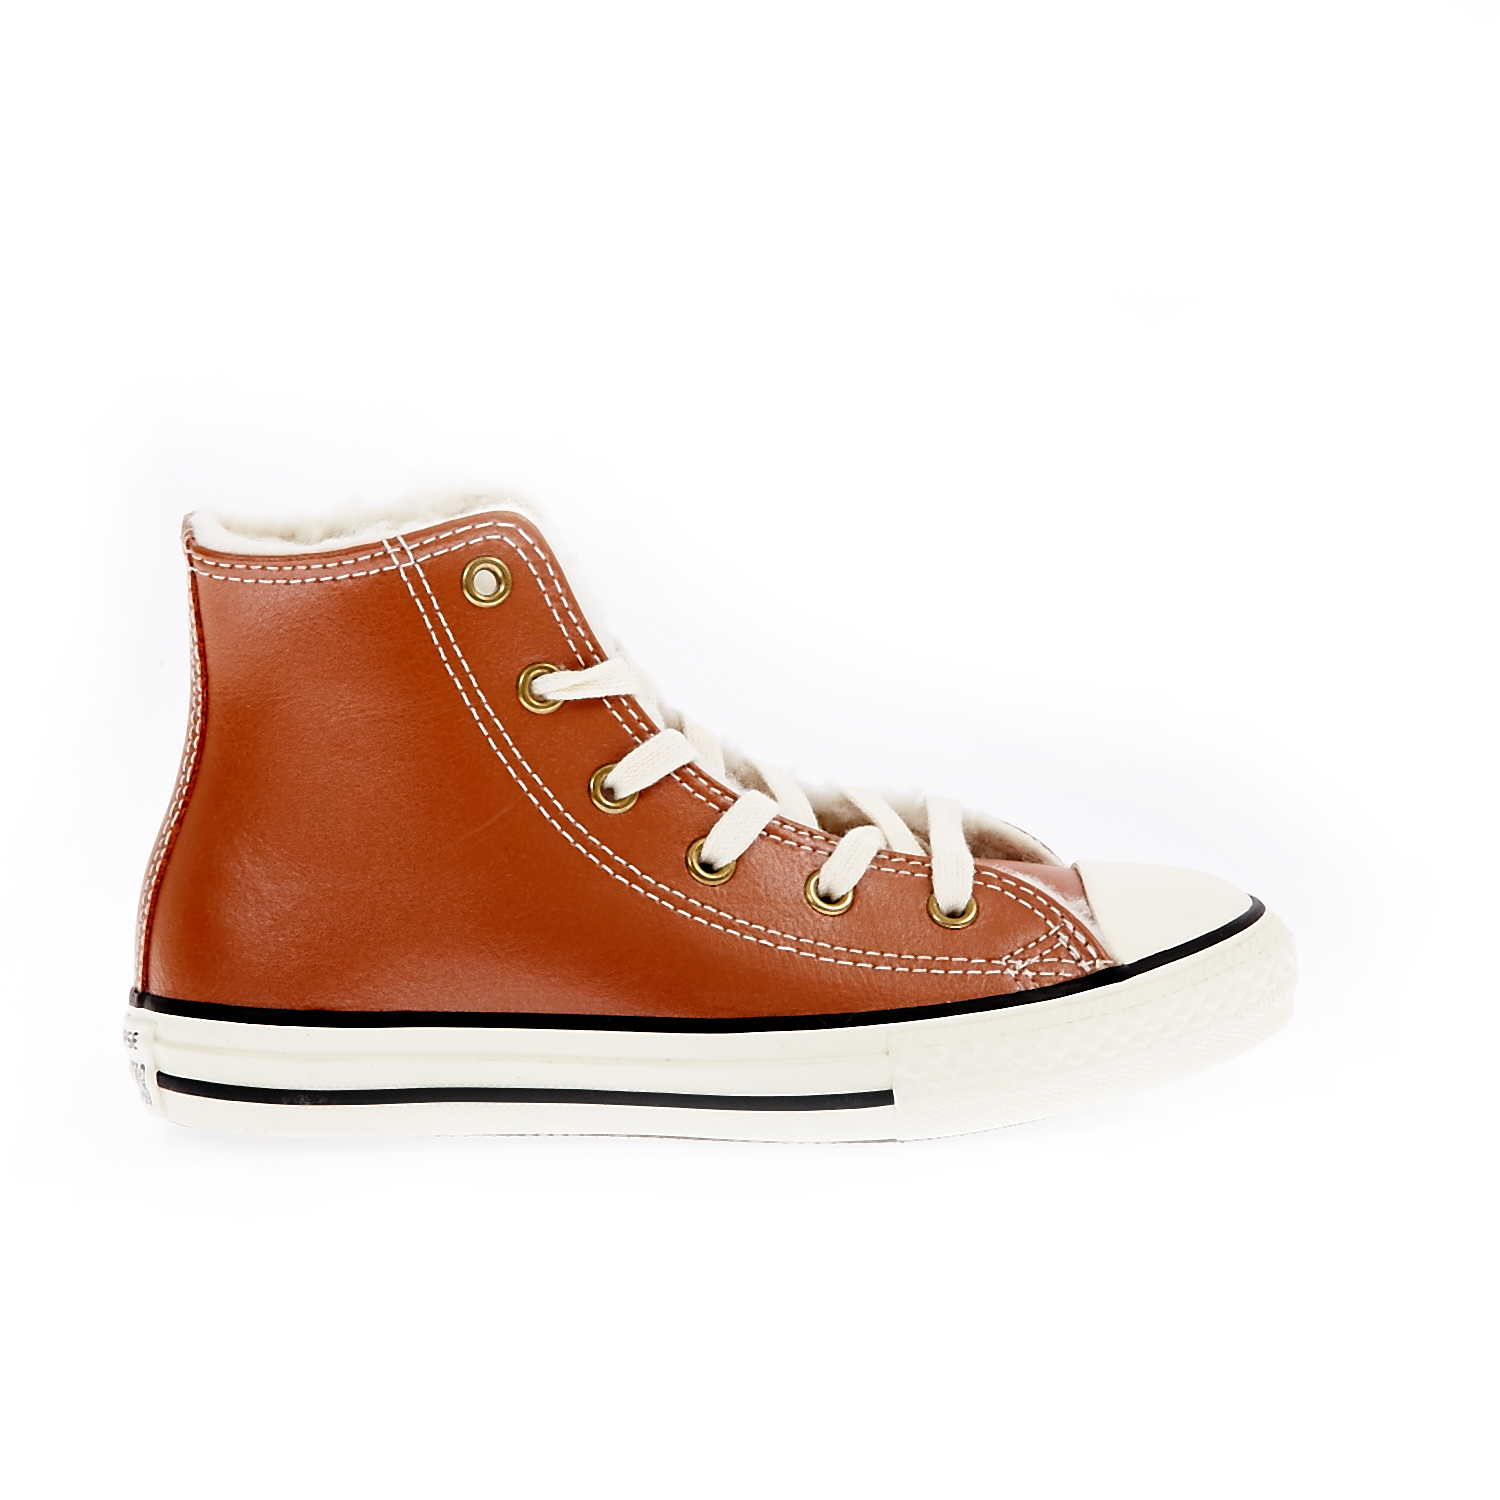 CONVERSE – Παιδικά παπούτσια Chuck Taylor All Star Hi καφέ